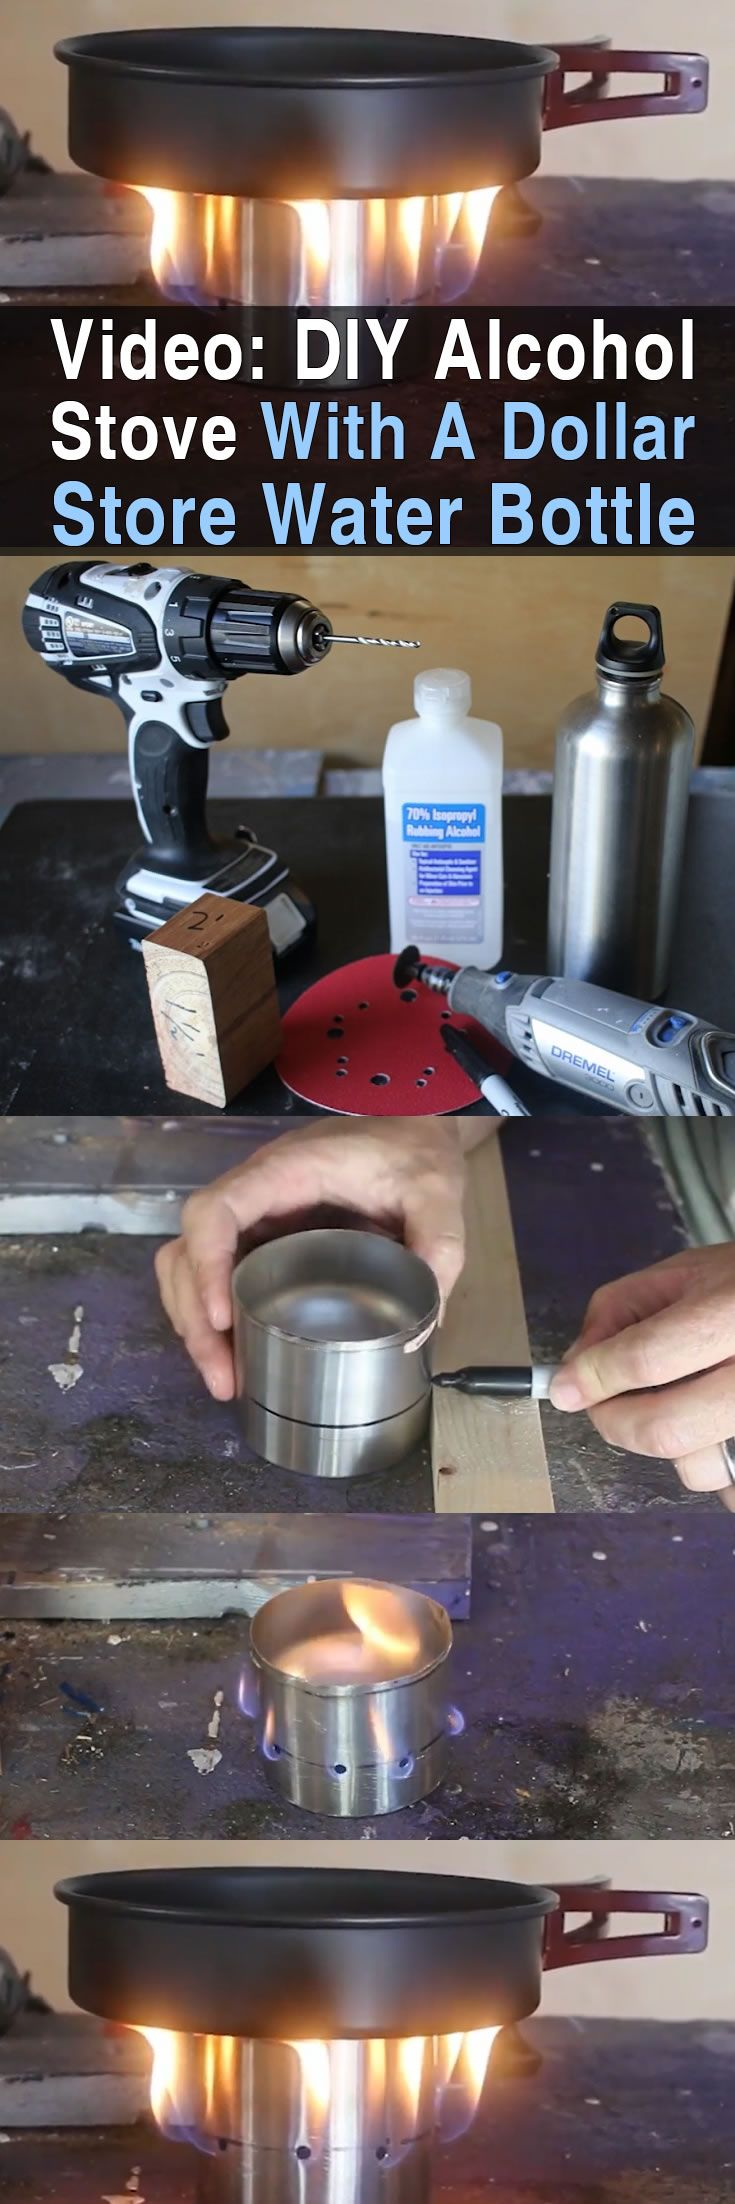 Today I want to share a really cool tutorial I found by Survivalist Prepper. This DIY alcohol stove requires a few cheap supplies and is easy to make.